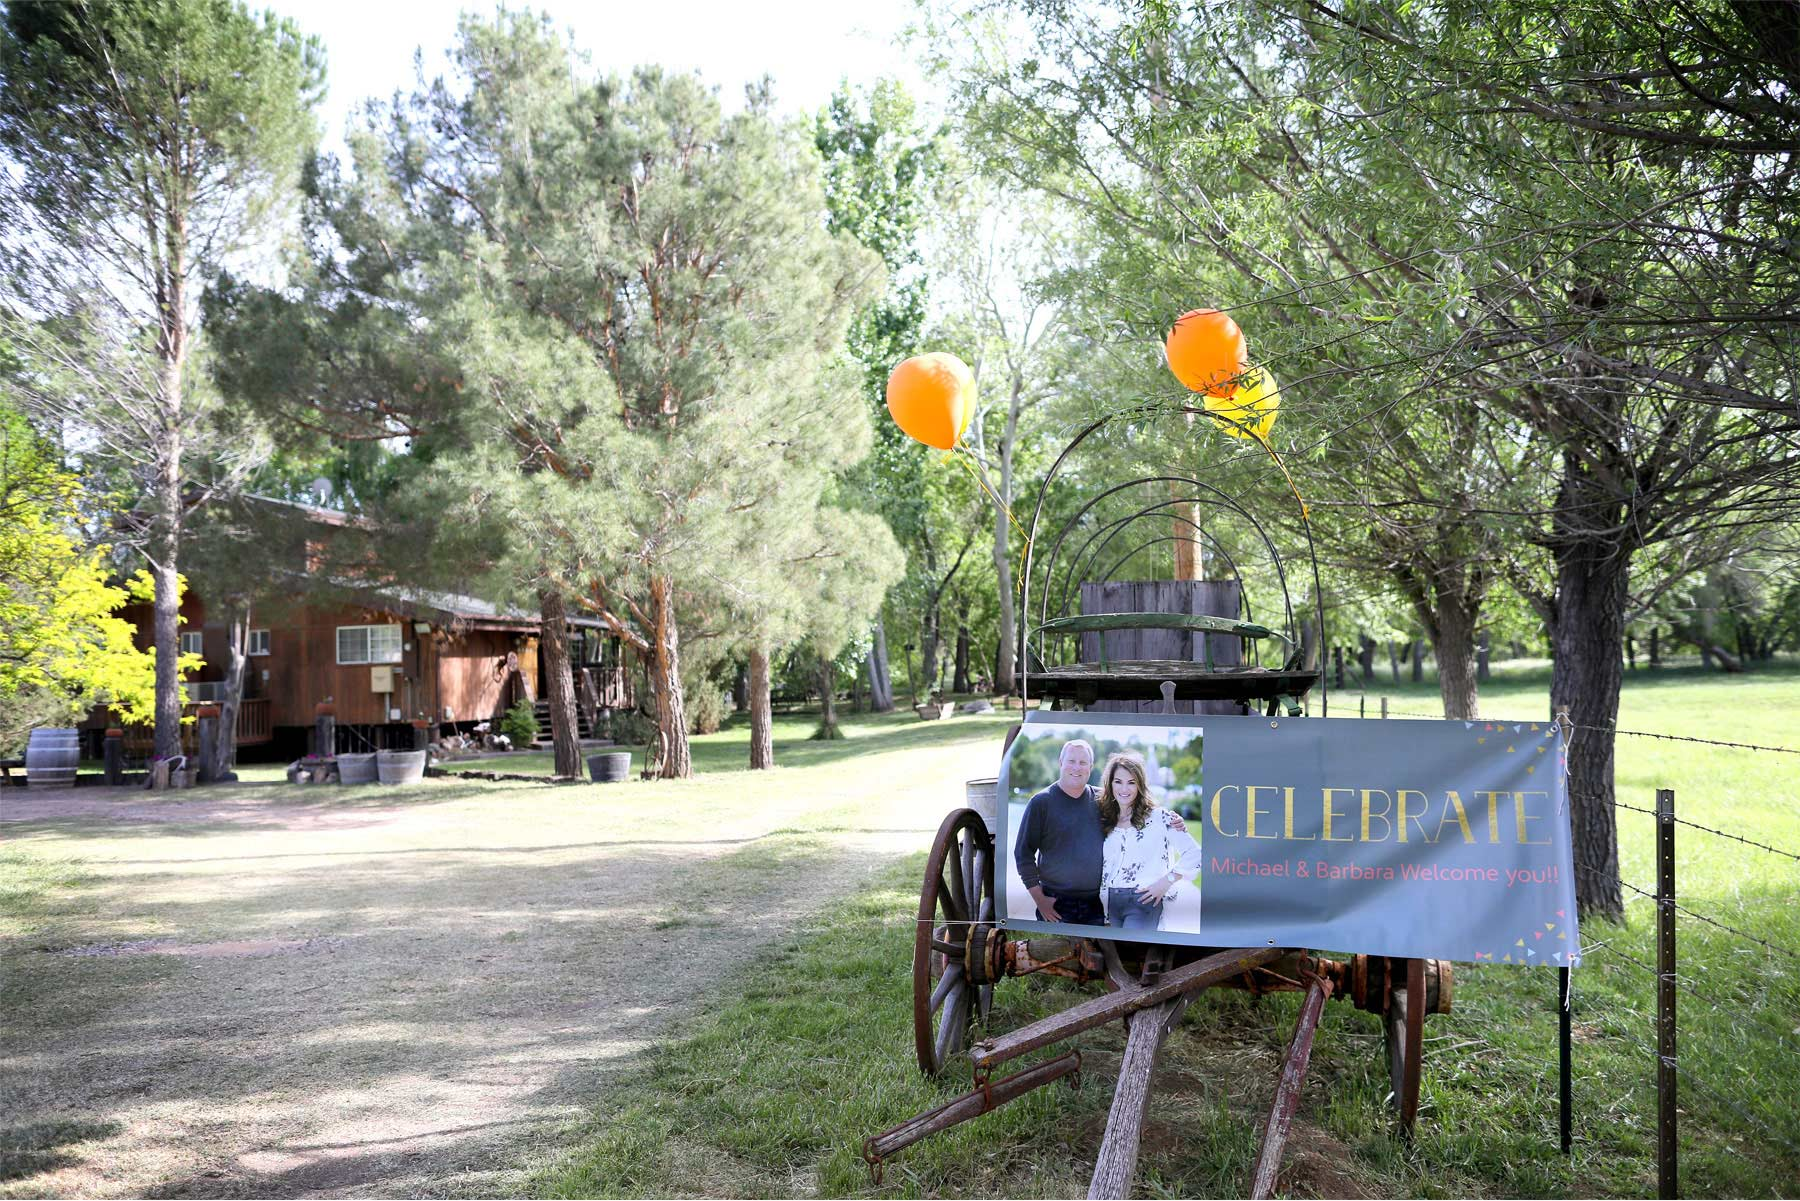 01-Cornville-Arizona-Wedding-Photographer-by-Andrew-Vick-Photography-Spring-Willow-Tree-Ranch-Rehearsal-Dinner-Sign-Barbara-and-Mike.jpg